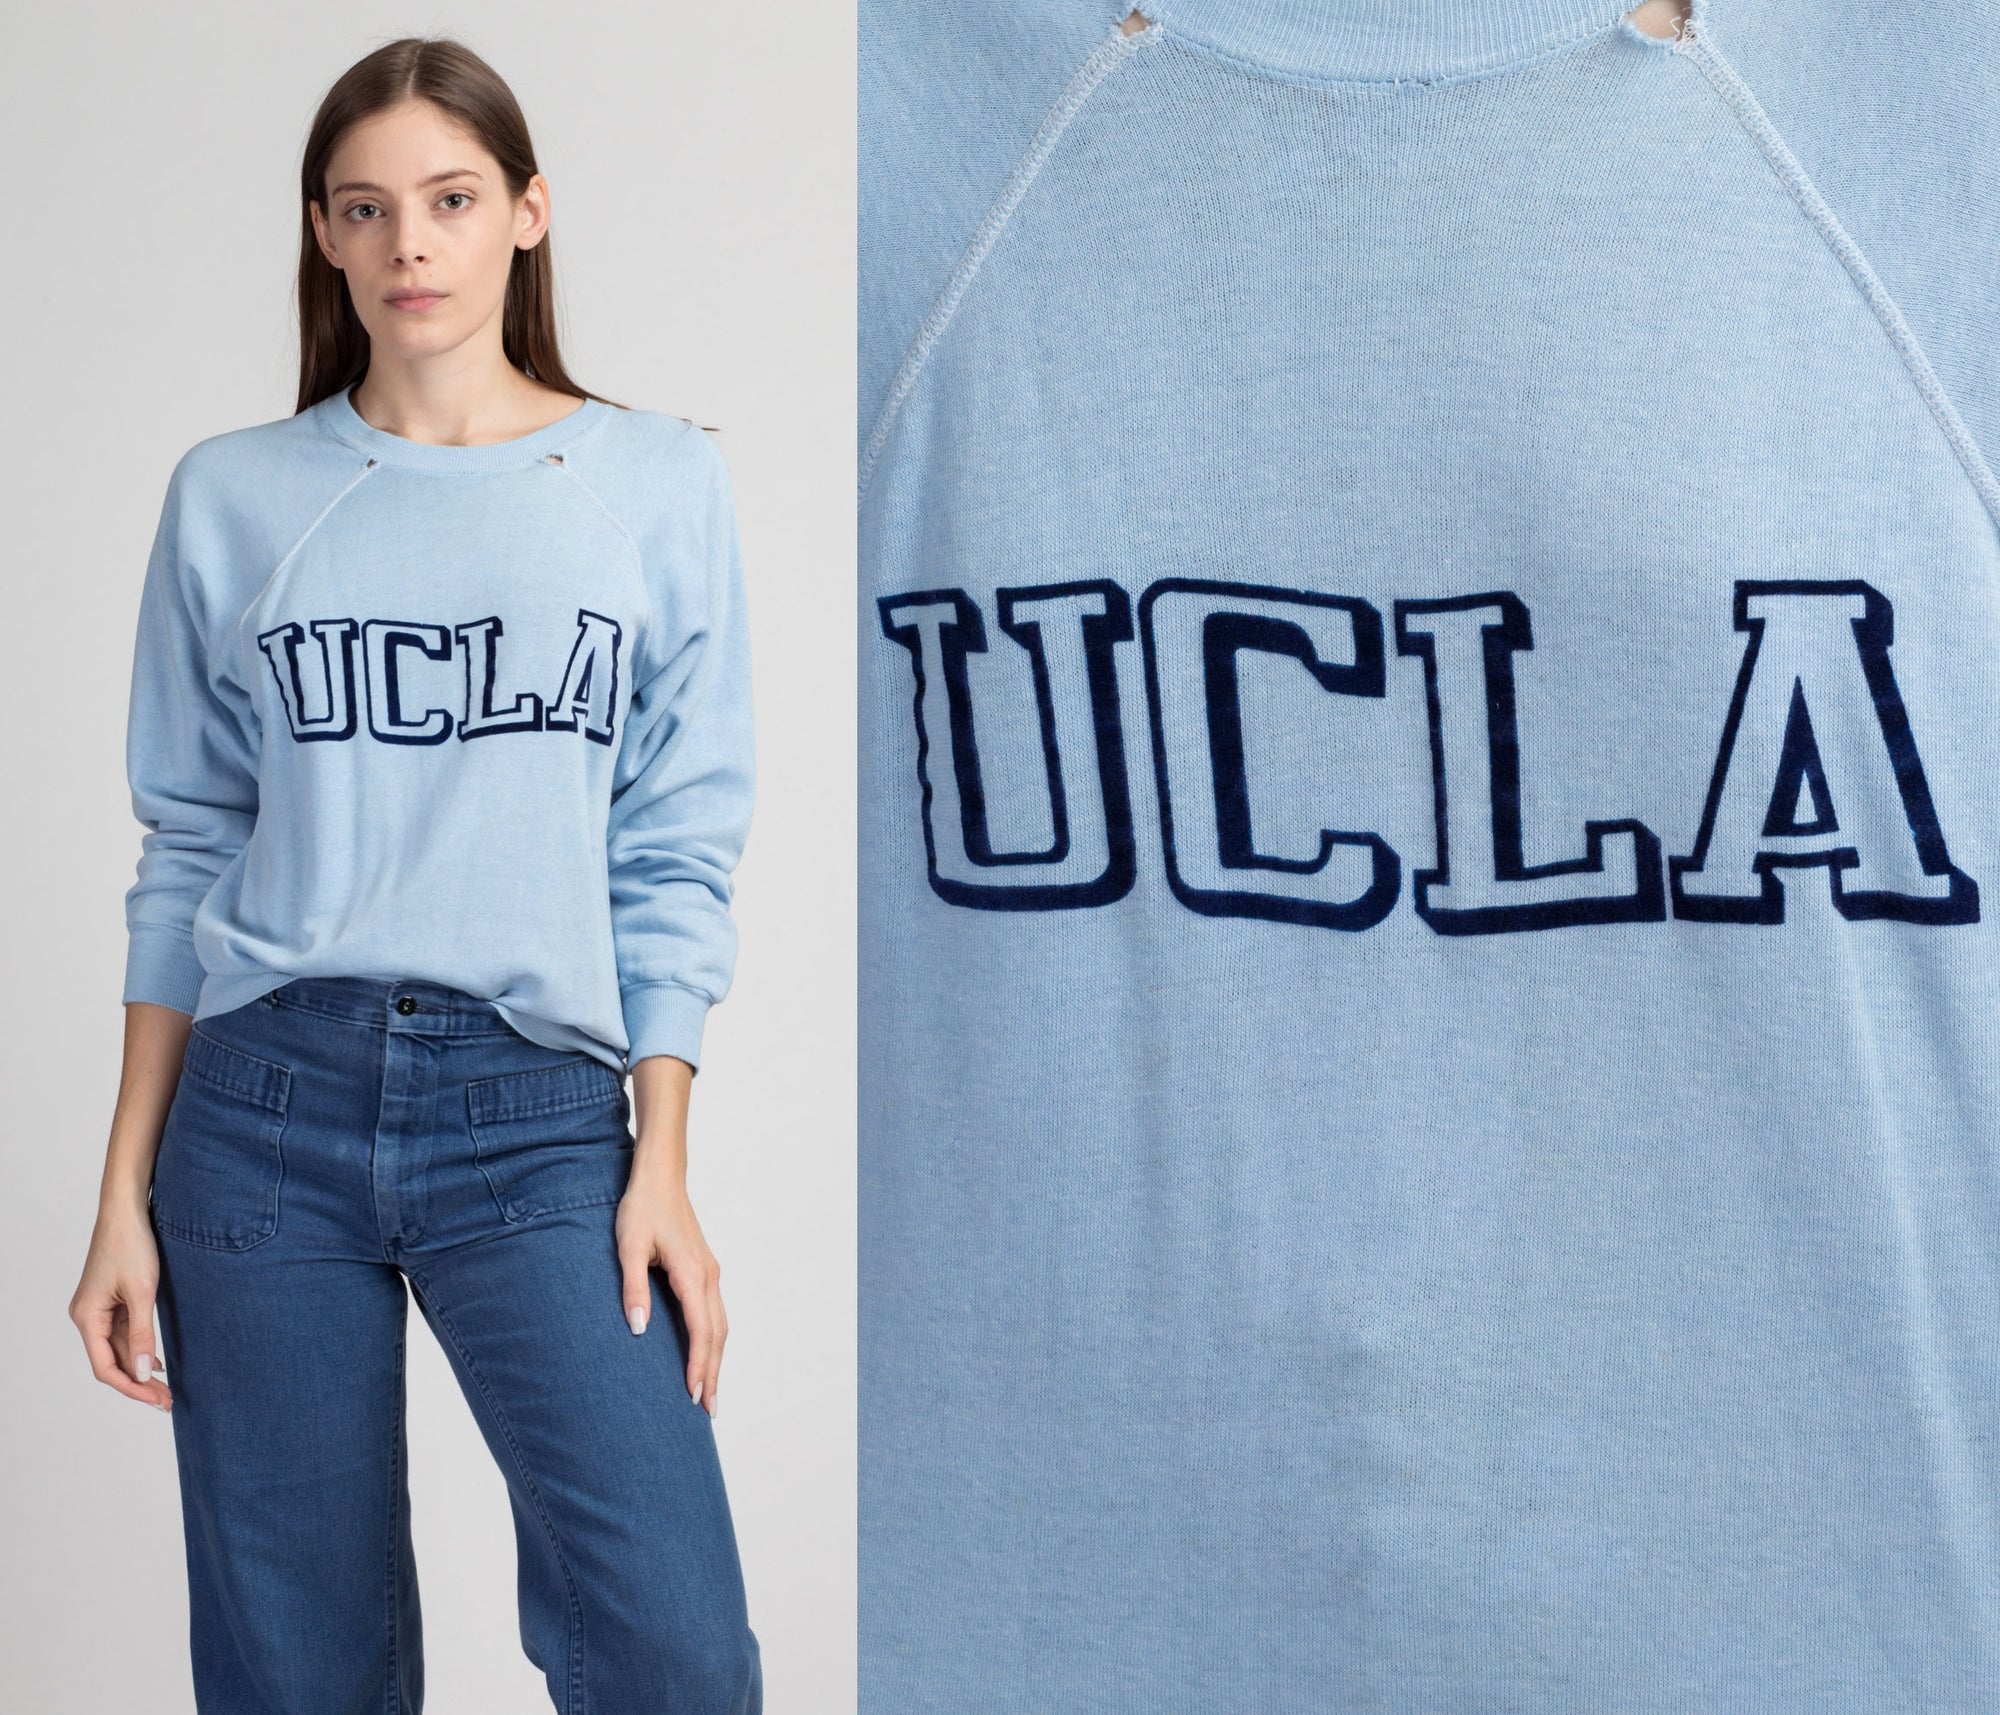 Vintage 70s UCLA Sweatshirt - Large | Raglan Sleeve Lightweight Blue University Graphic Pullover